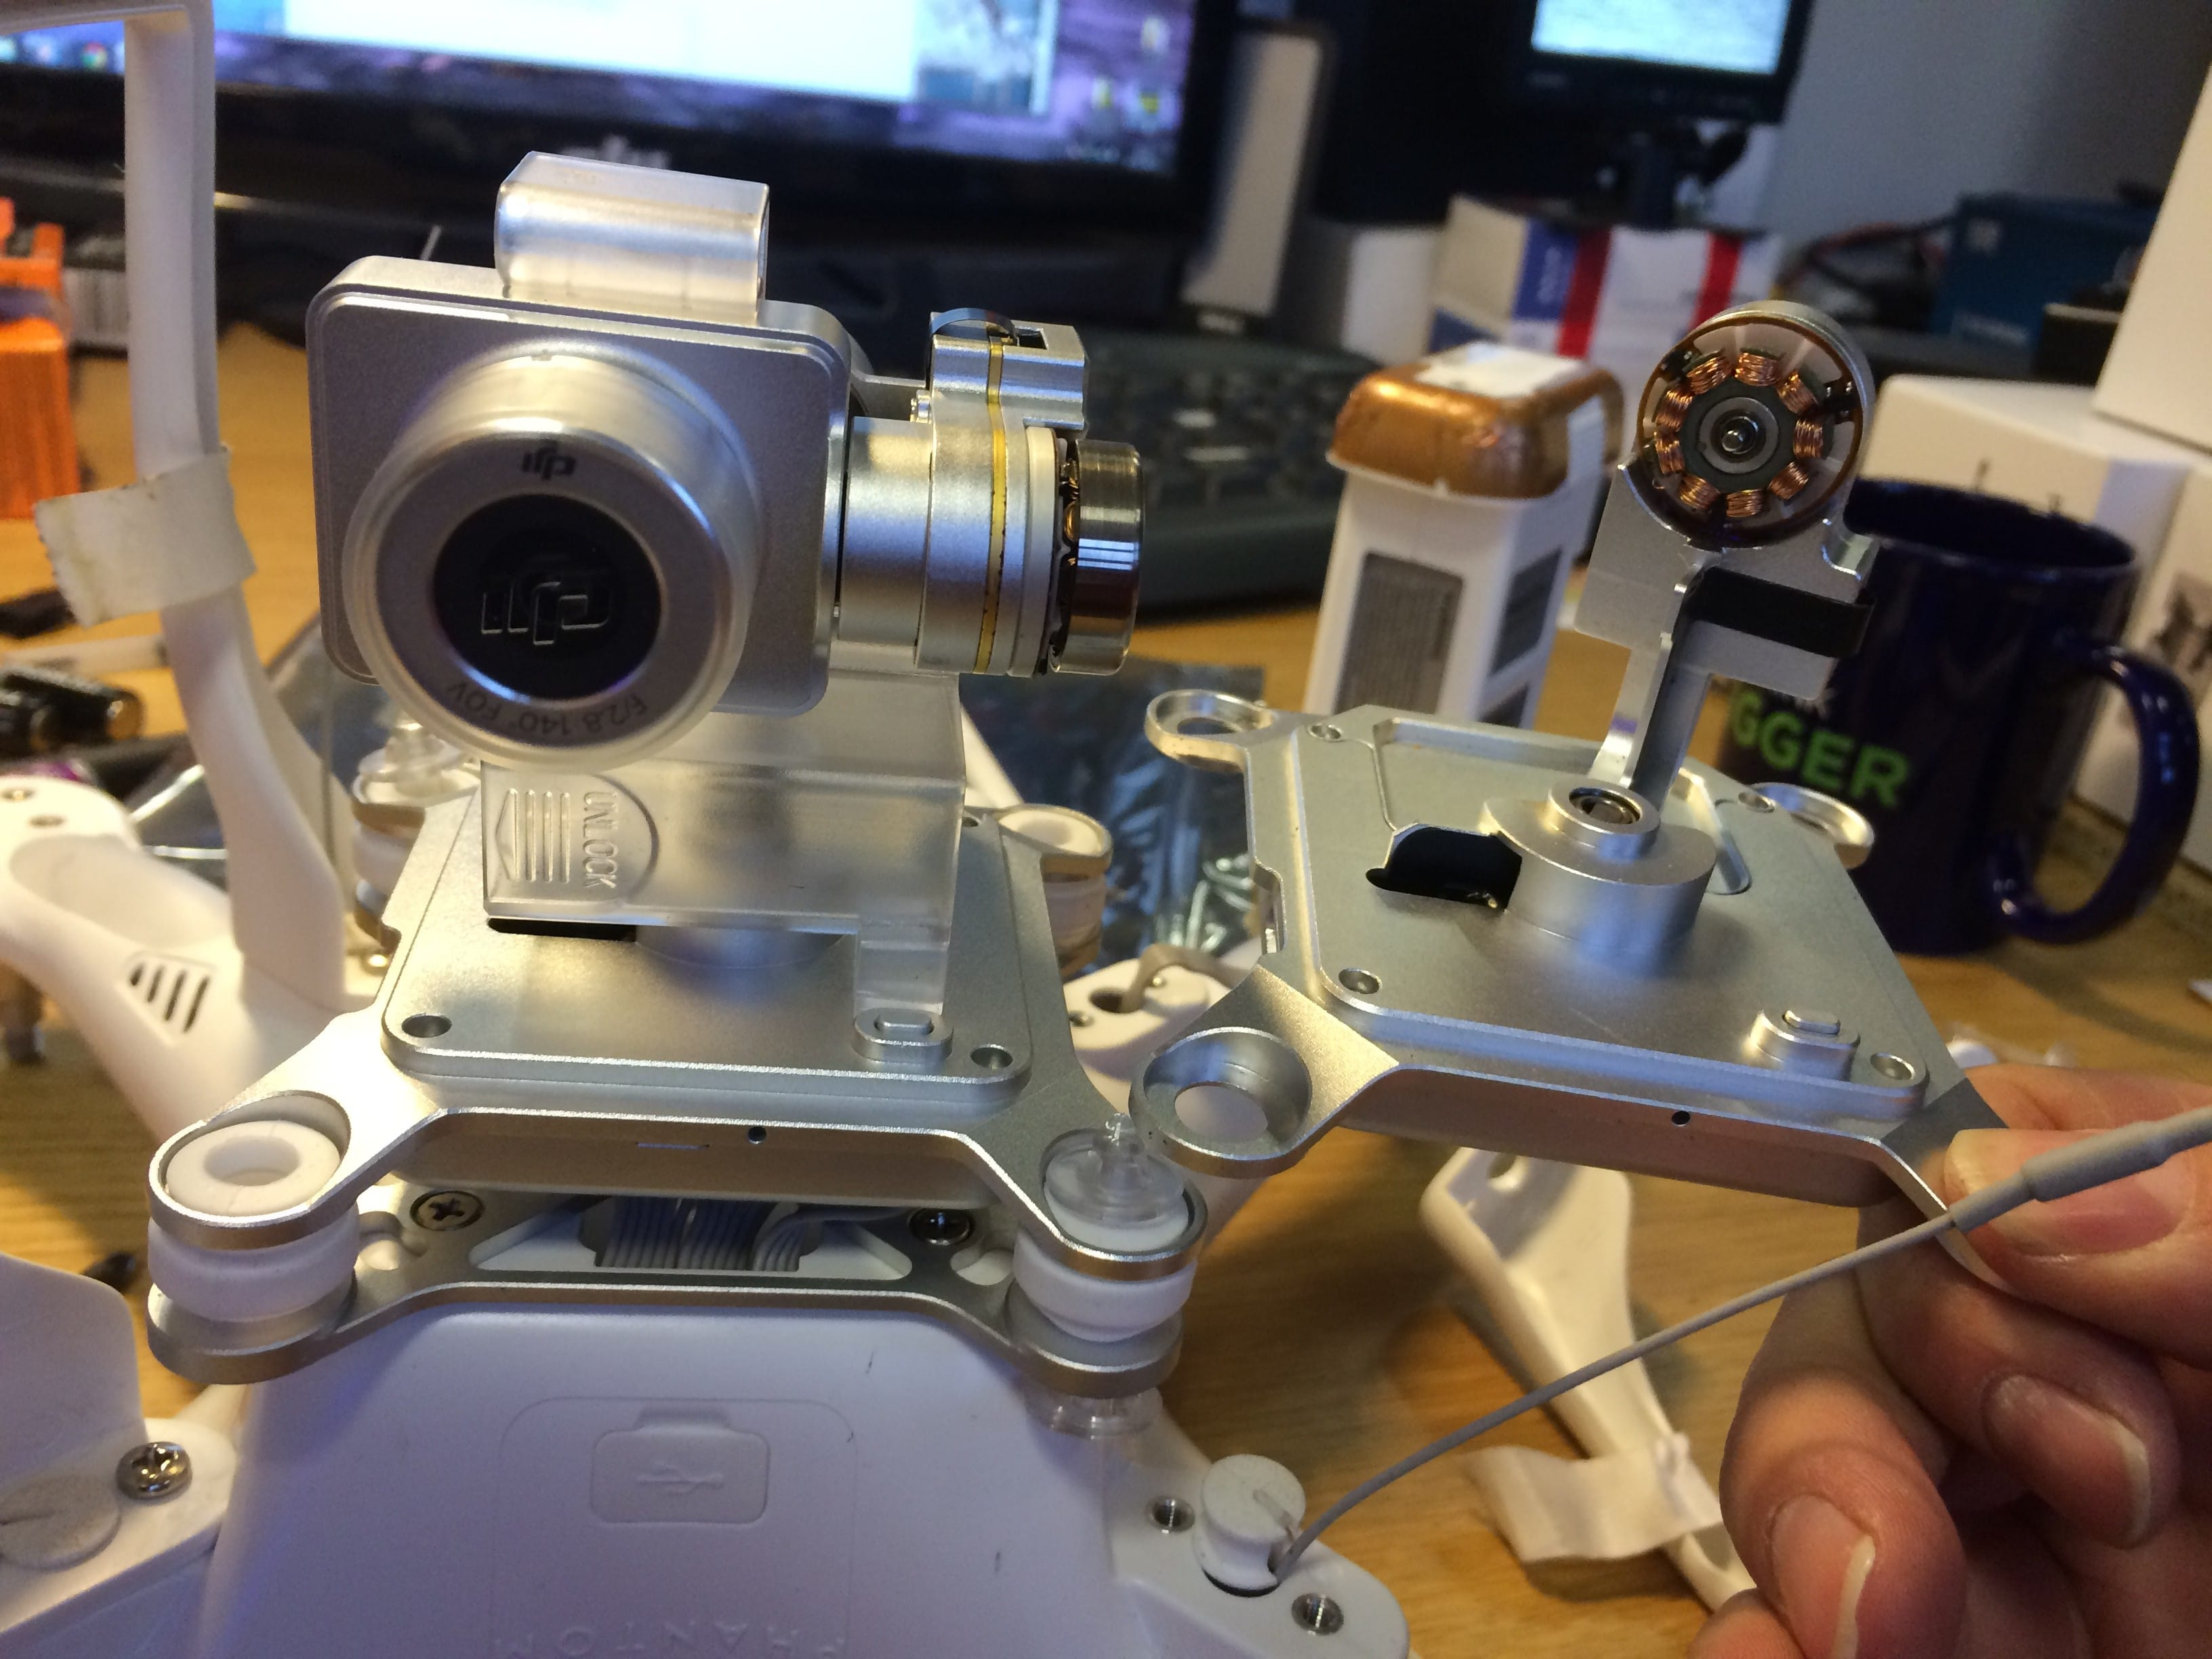 Lost your DJI Phantom 2 Vision+ Camera? Heliguy can replace.